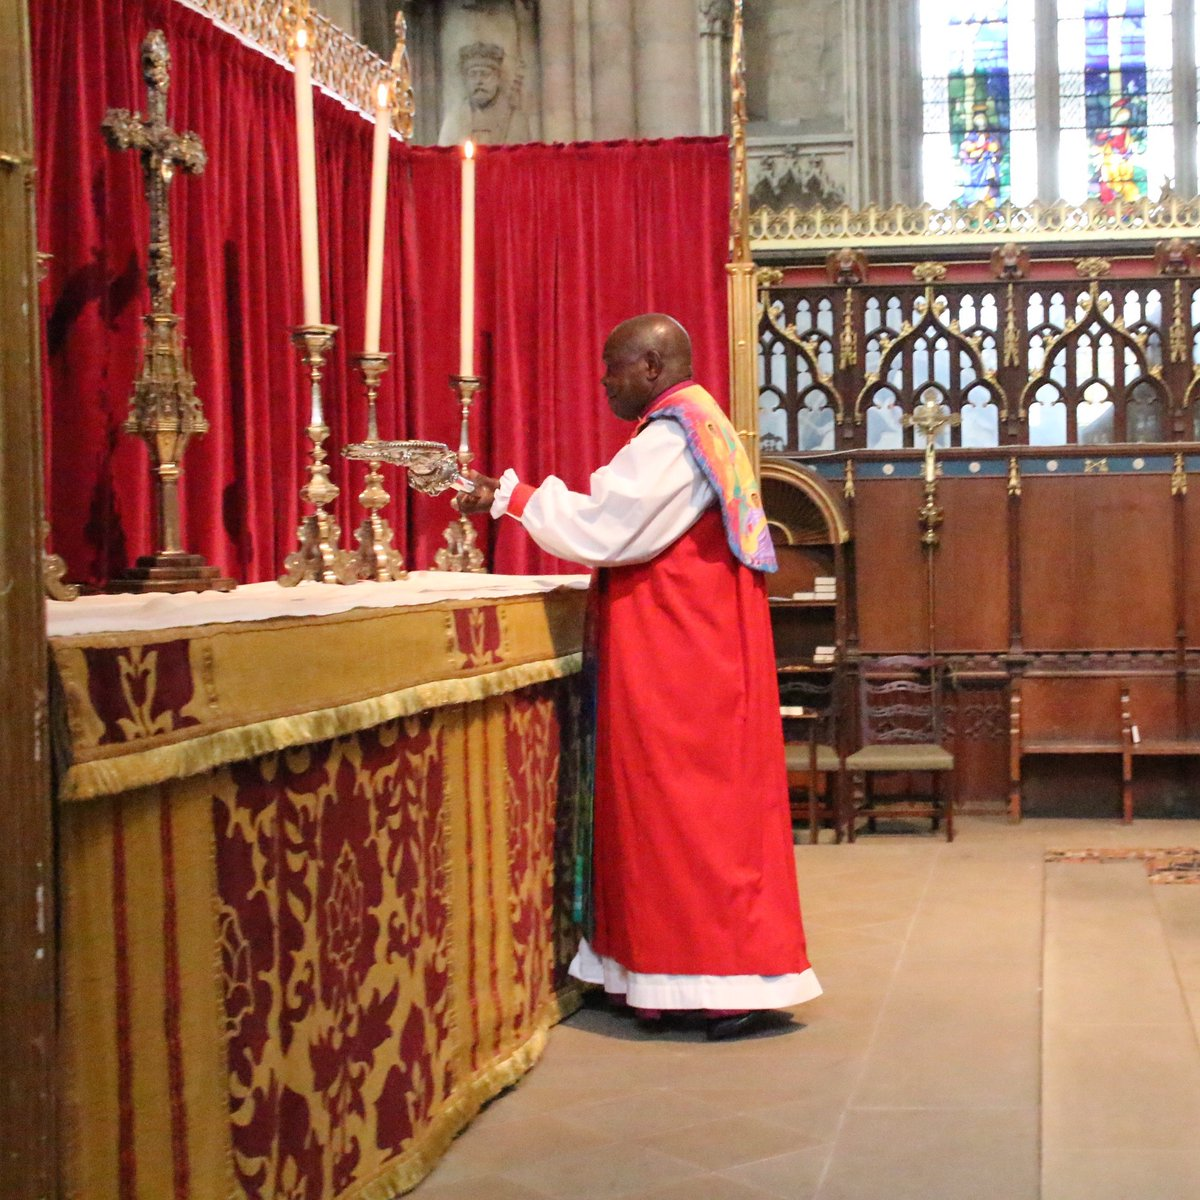 In York Minster, Archbishop John Sentamu laid down his crozier of office on the high altar, with The Irish Blessing playing as he did so. Dr Sentamu requested the piece for his last act after 15 years as Archbishop, because his favourite hymn is 'Be Thou My Vision.' https://t.co/XY3dmXUtky